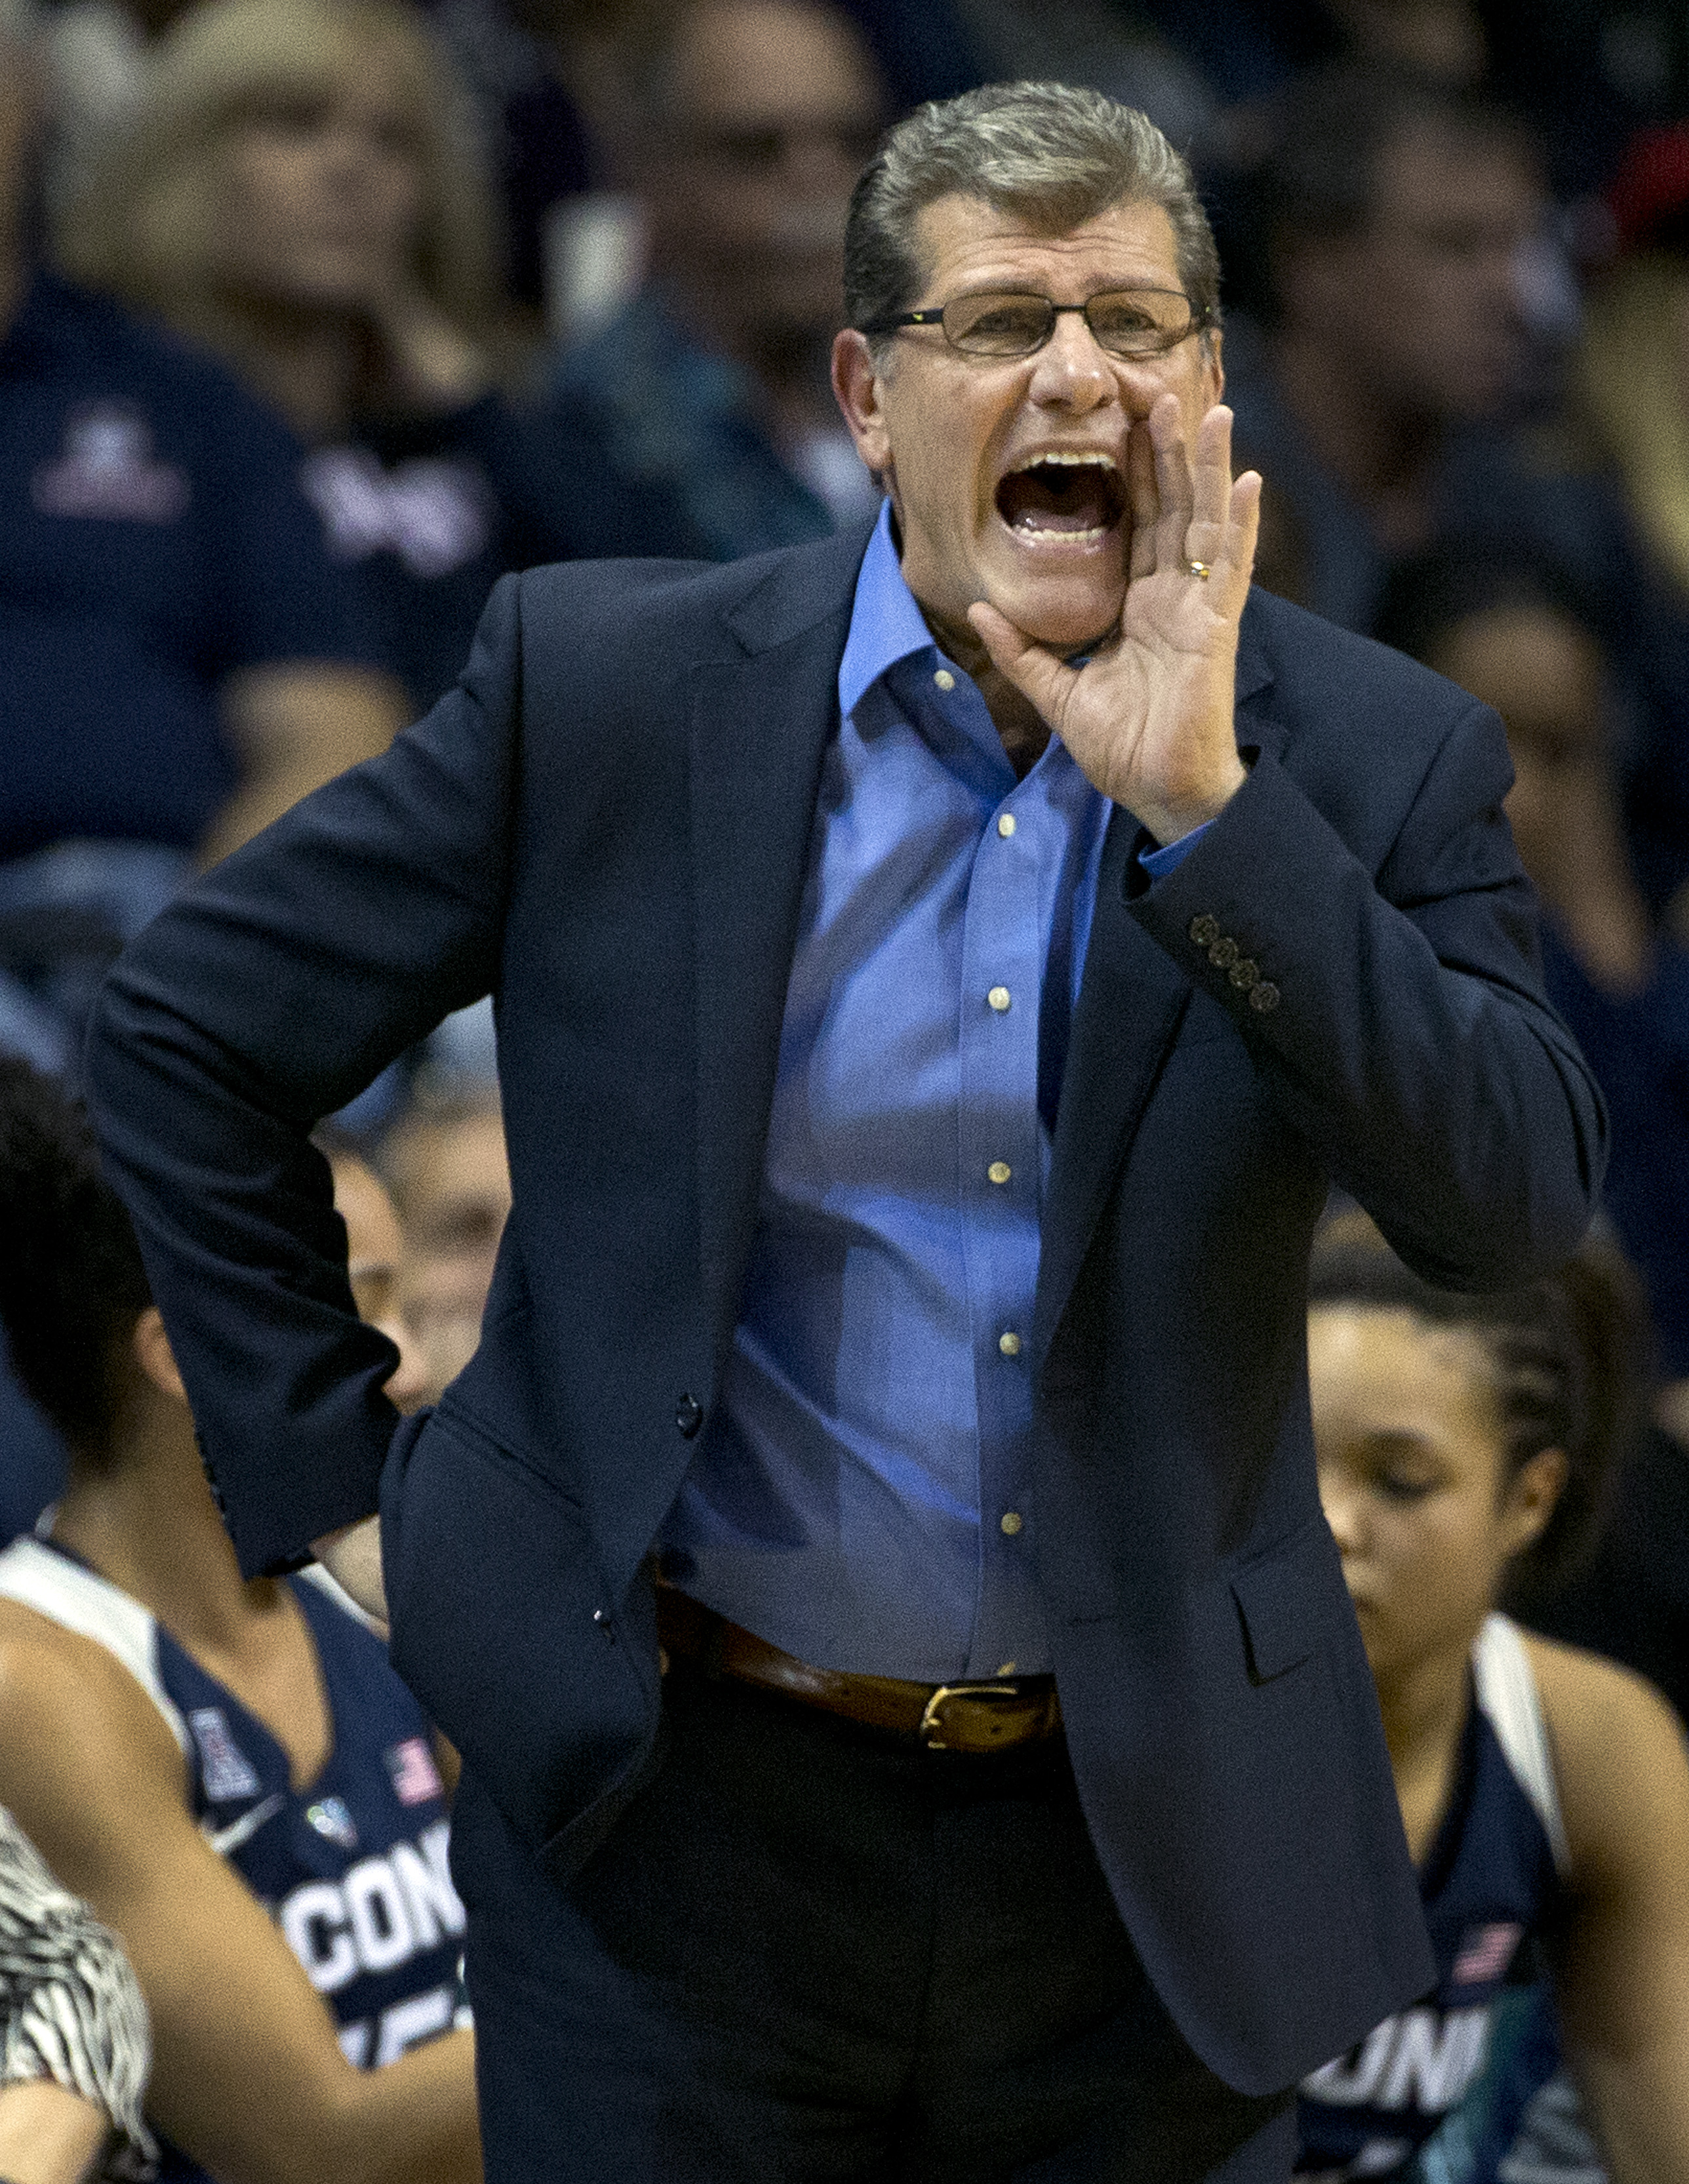 Connecticut head coach Geno Auriemma yells to his team during the first half of an NCAA college basketball game against South Florida, Sunday, Jan. 10, 2016, in Tampa, Fla. (AP Photo/Chris O'Meara)